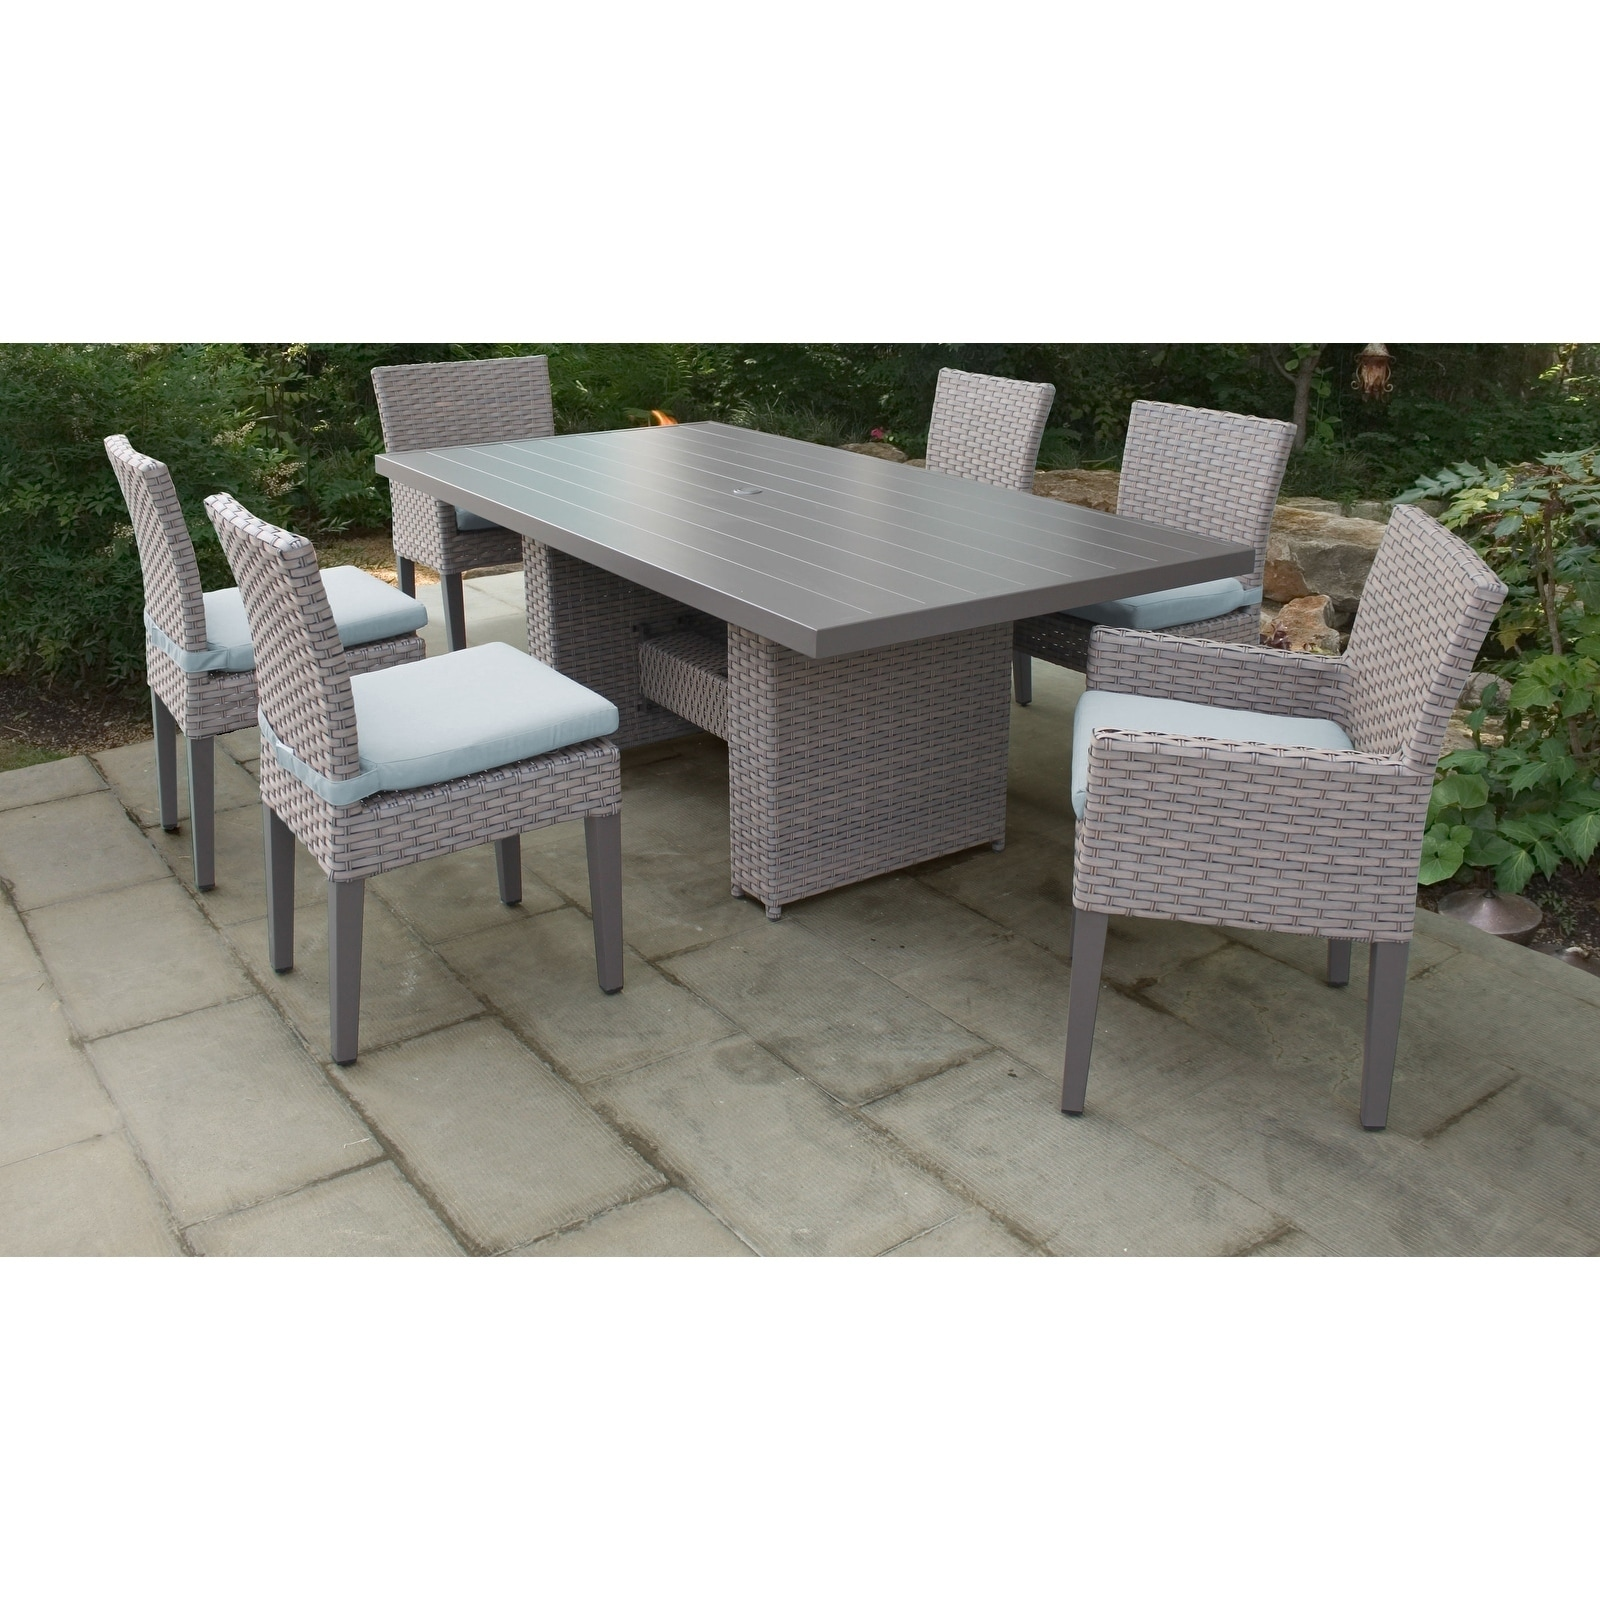 Monterey Rectangular Outdoor Patio Dining Table With 4 Armless Chairs And 2 W Arms